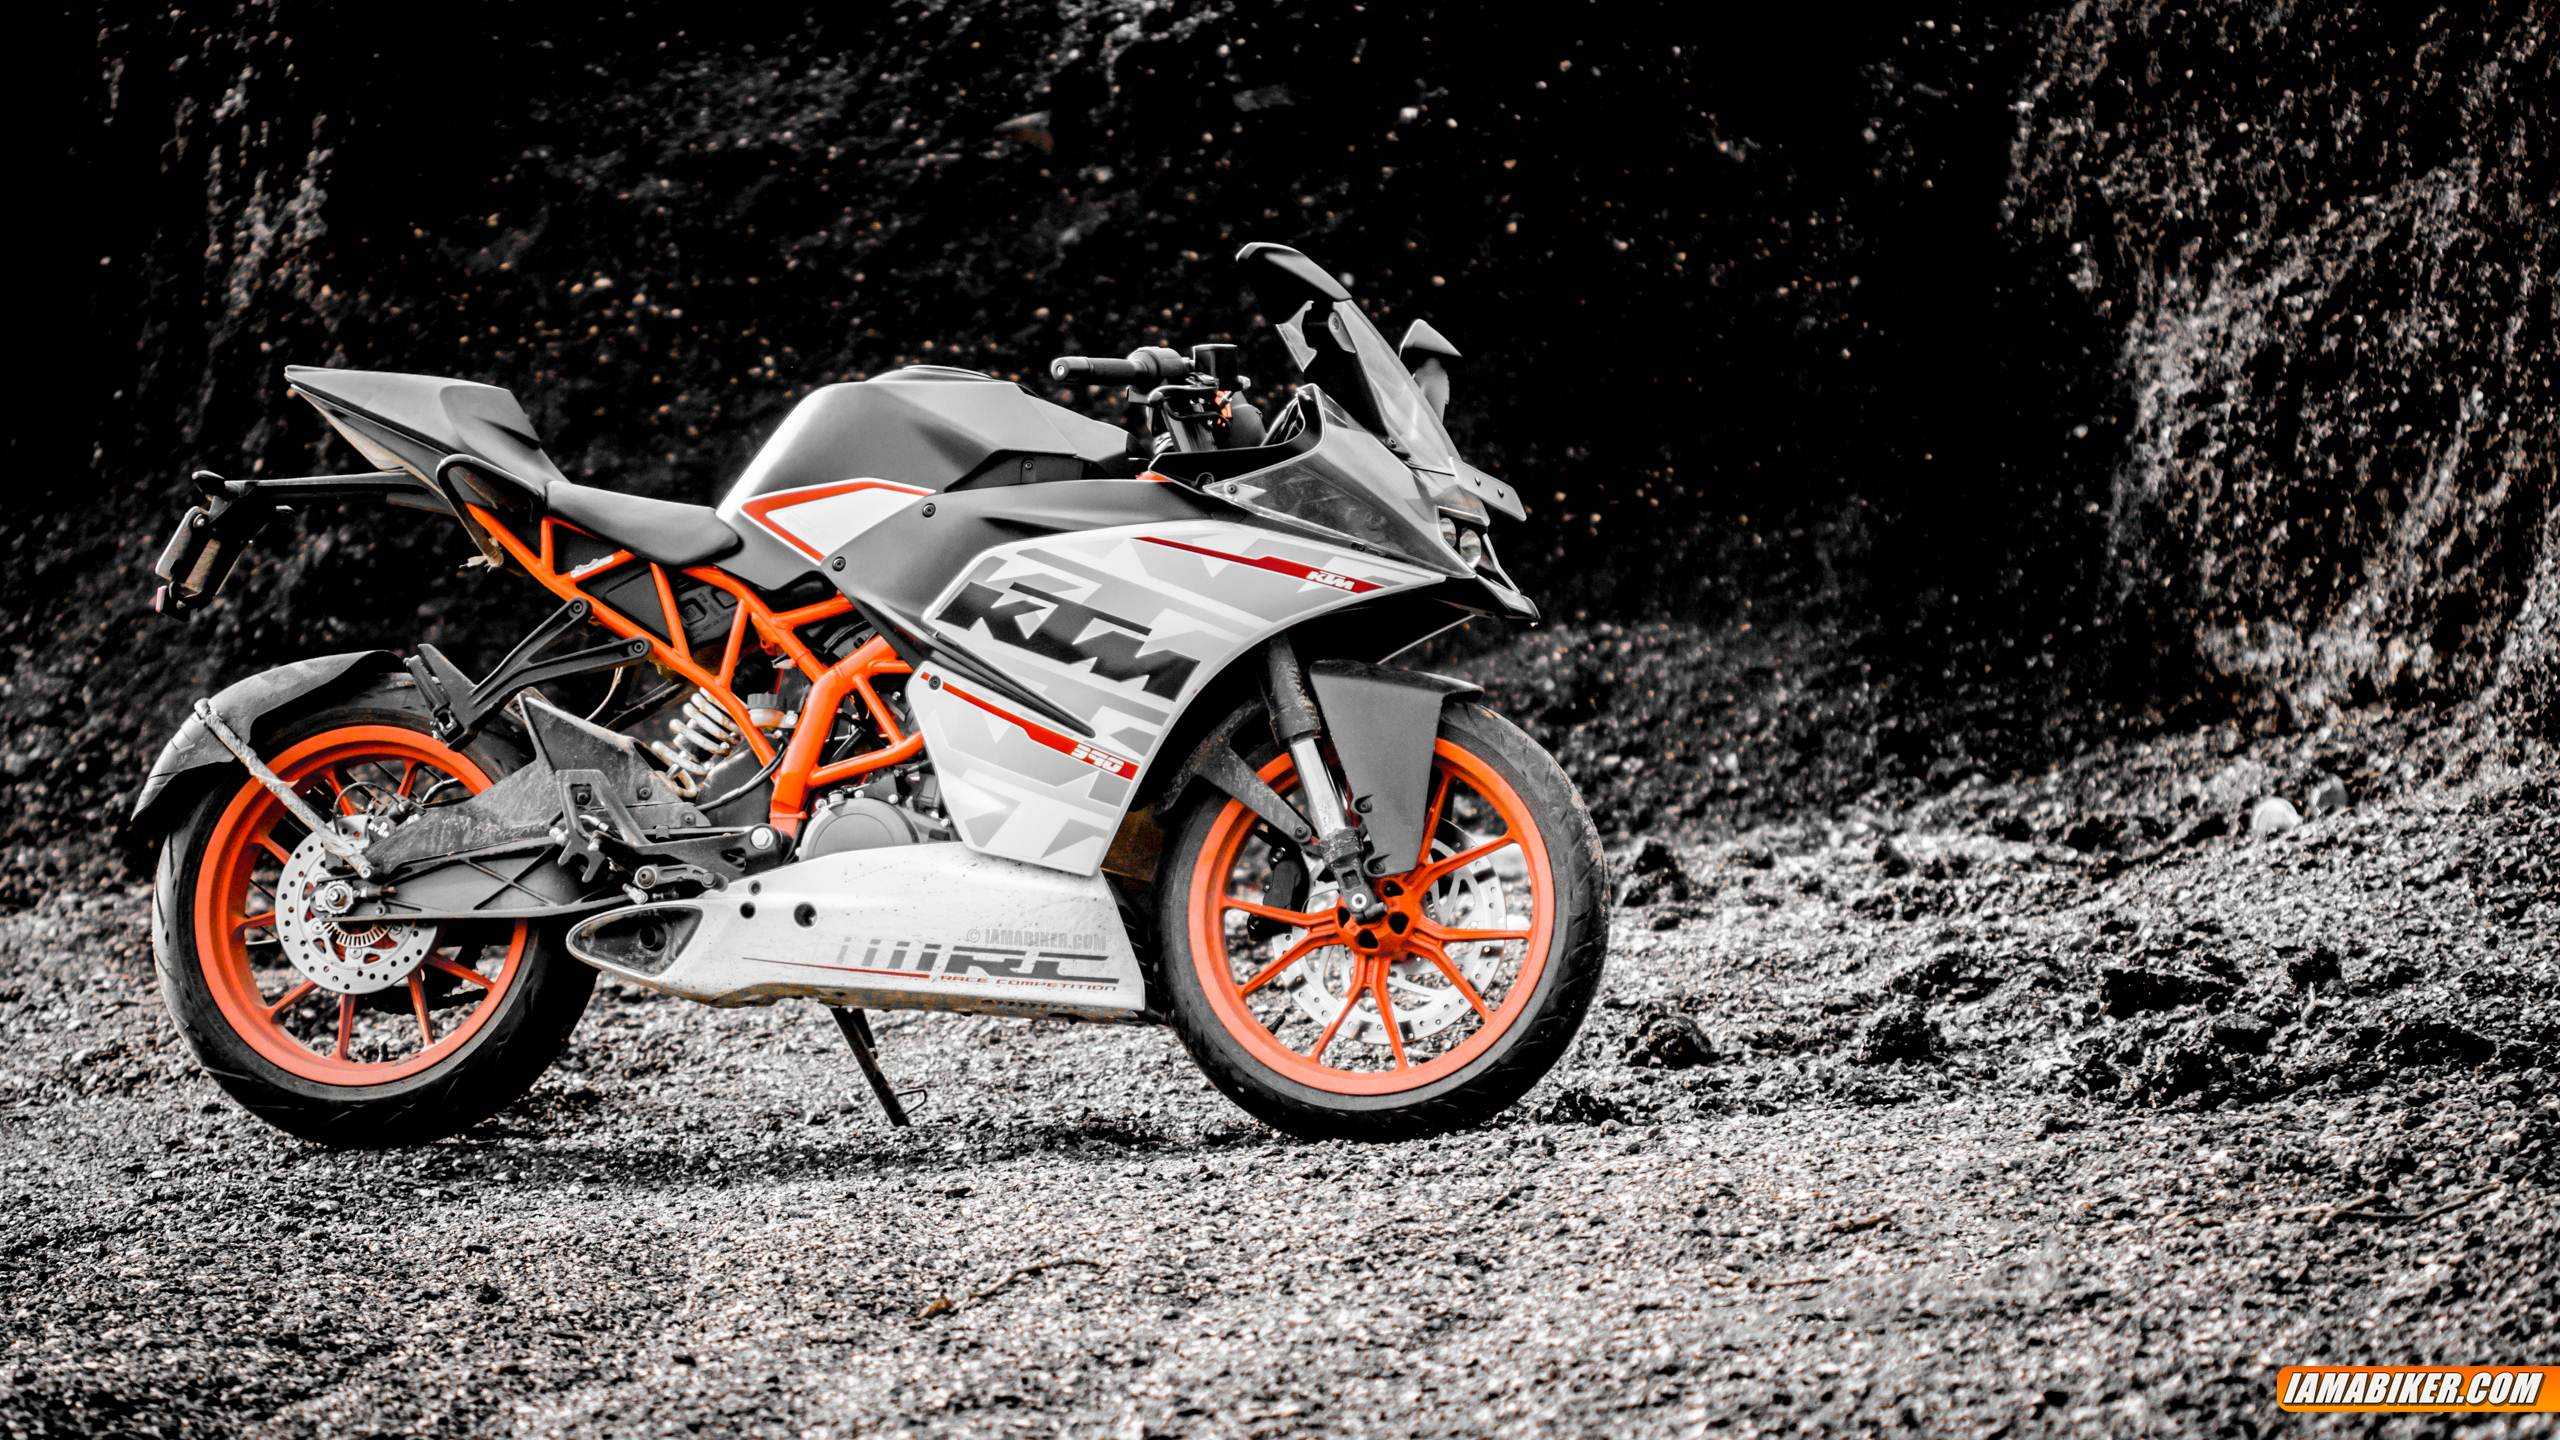 KTM RC 390 wallpapers - 2